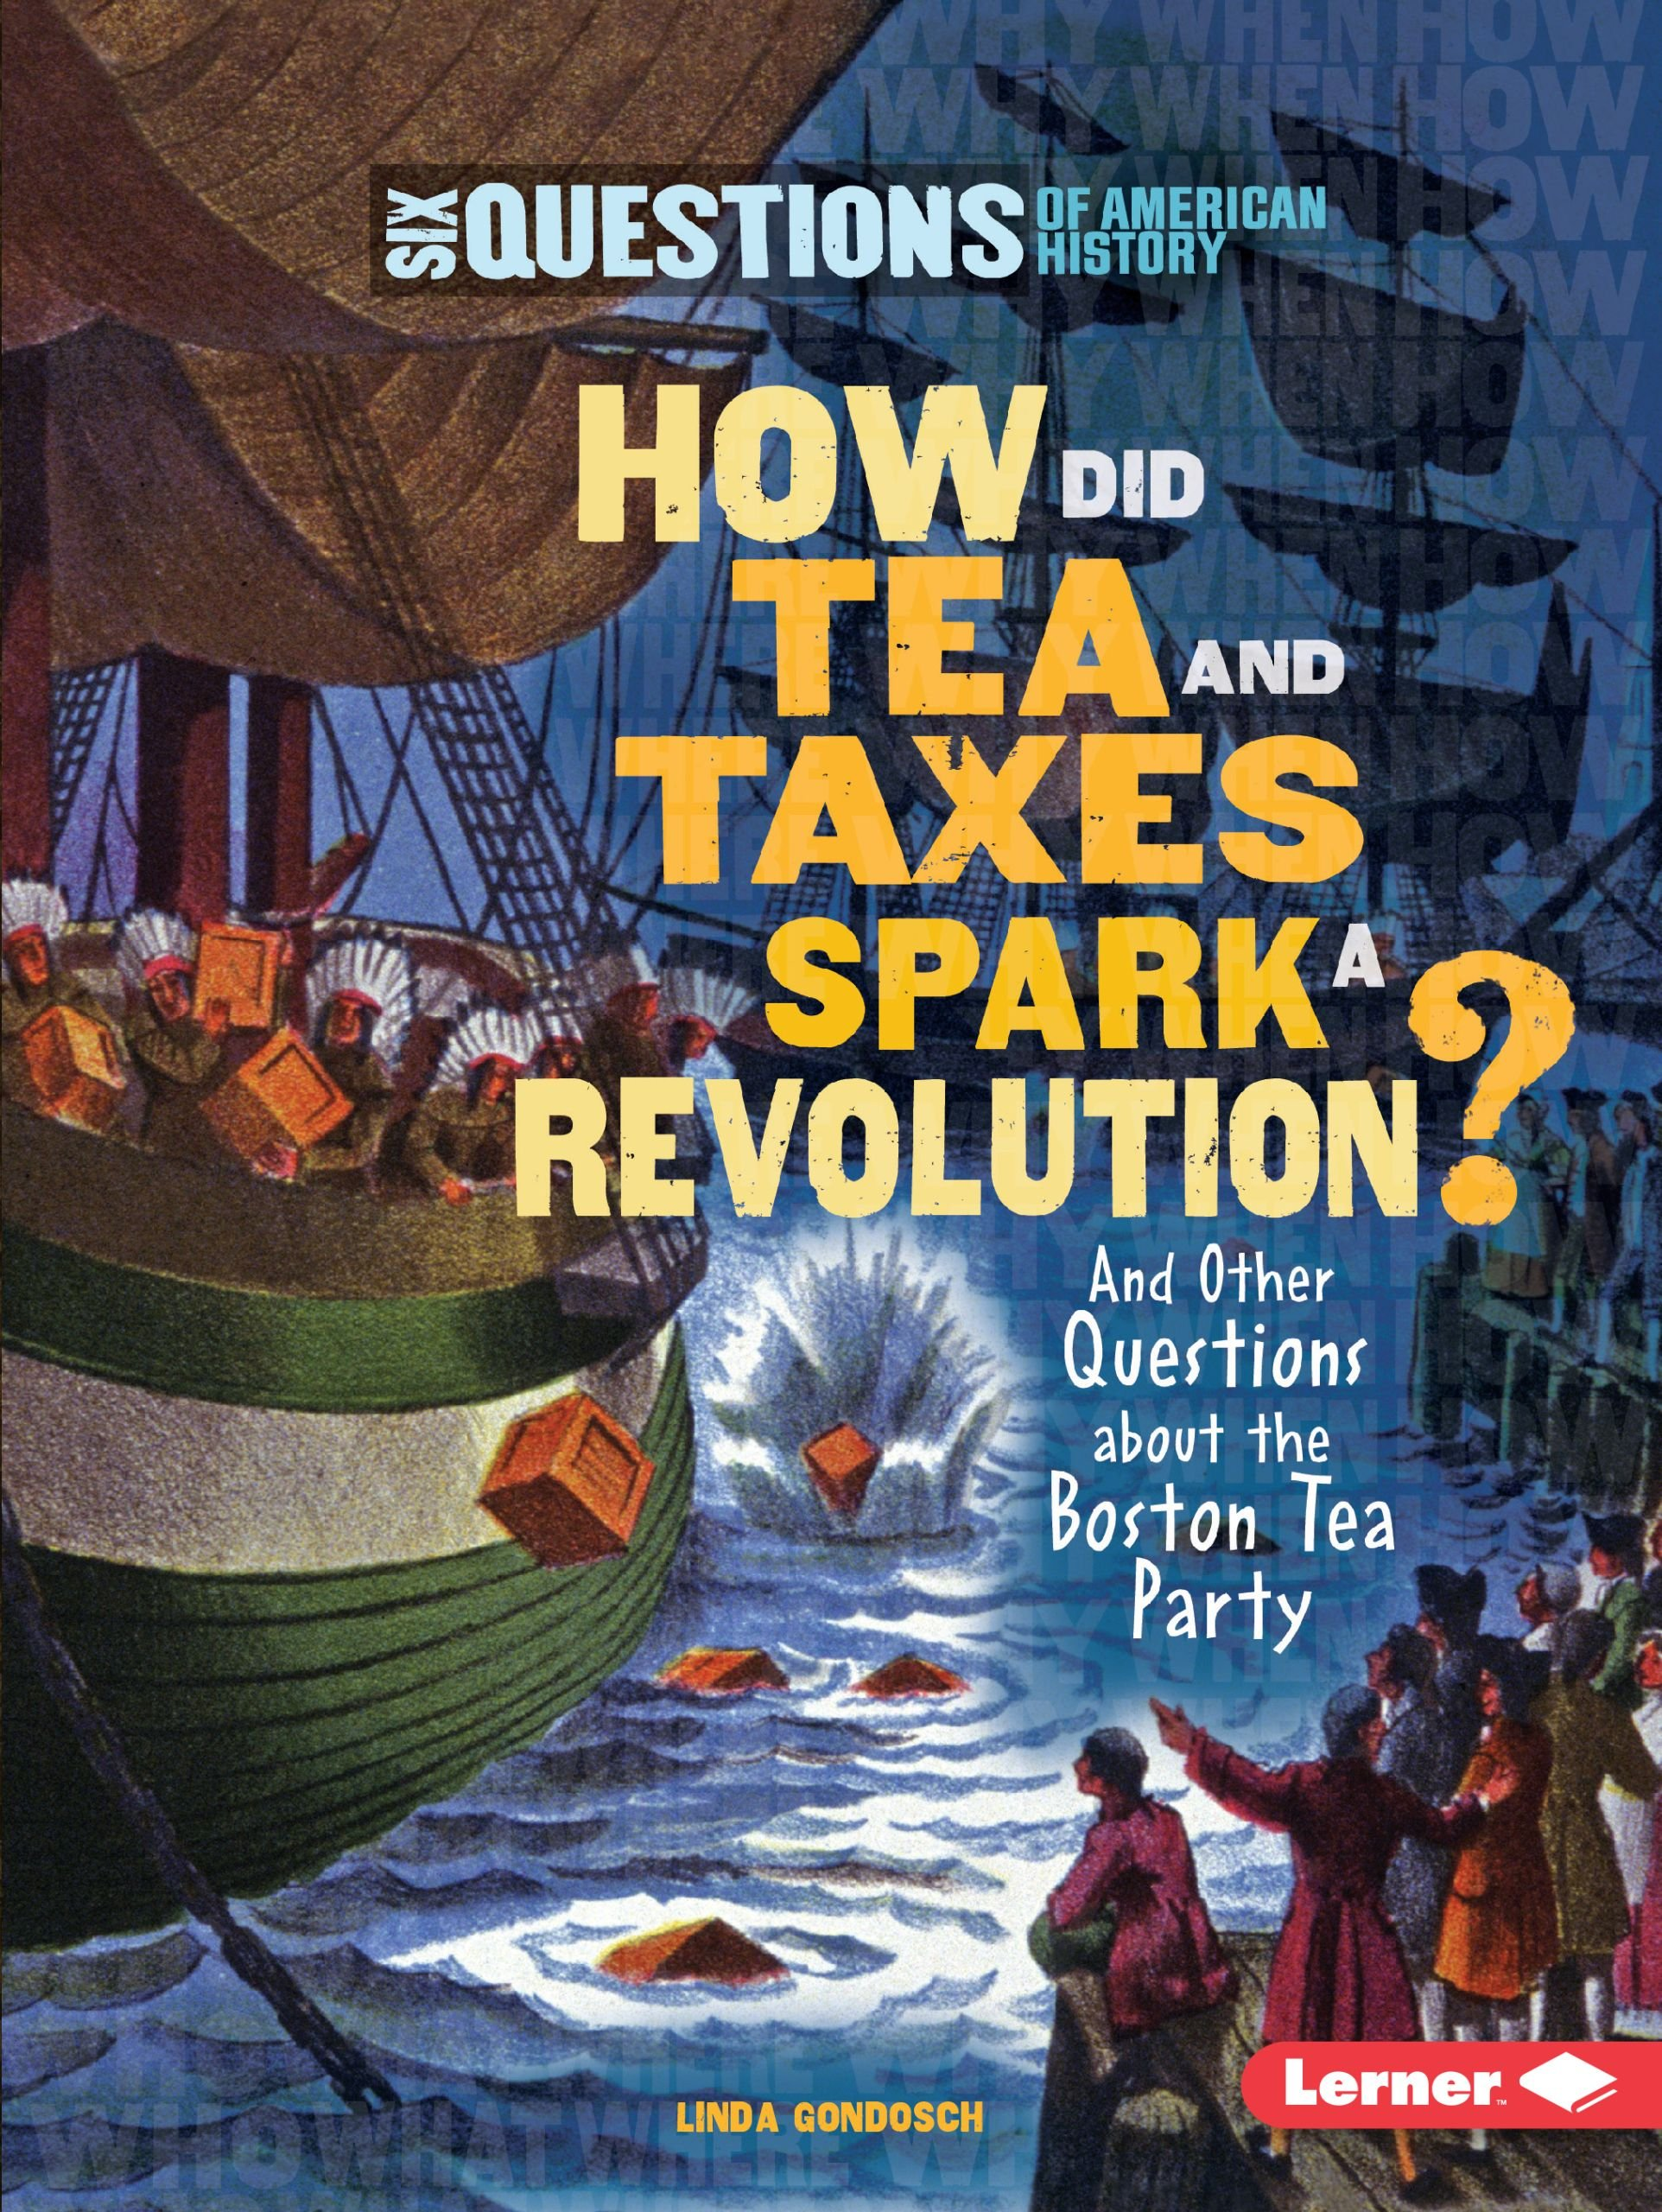 Download How Did Tea and Taxes Spark a Revolution?: And Other Questions About the Boston Tea Party (Six Questions of American History) ebook